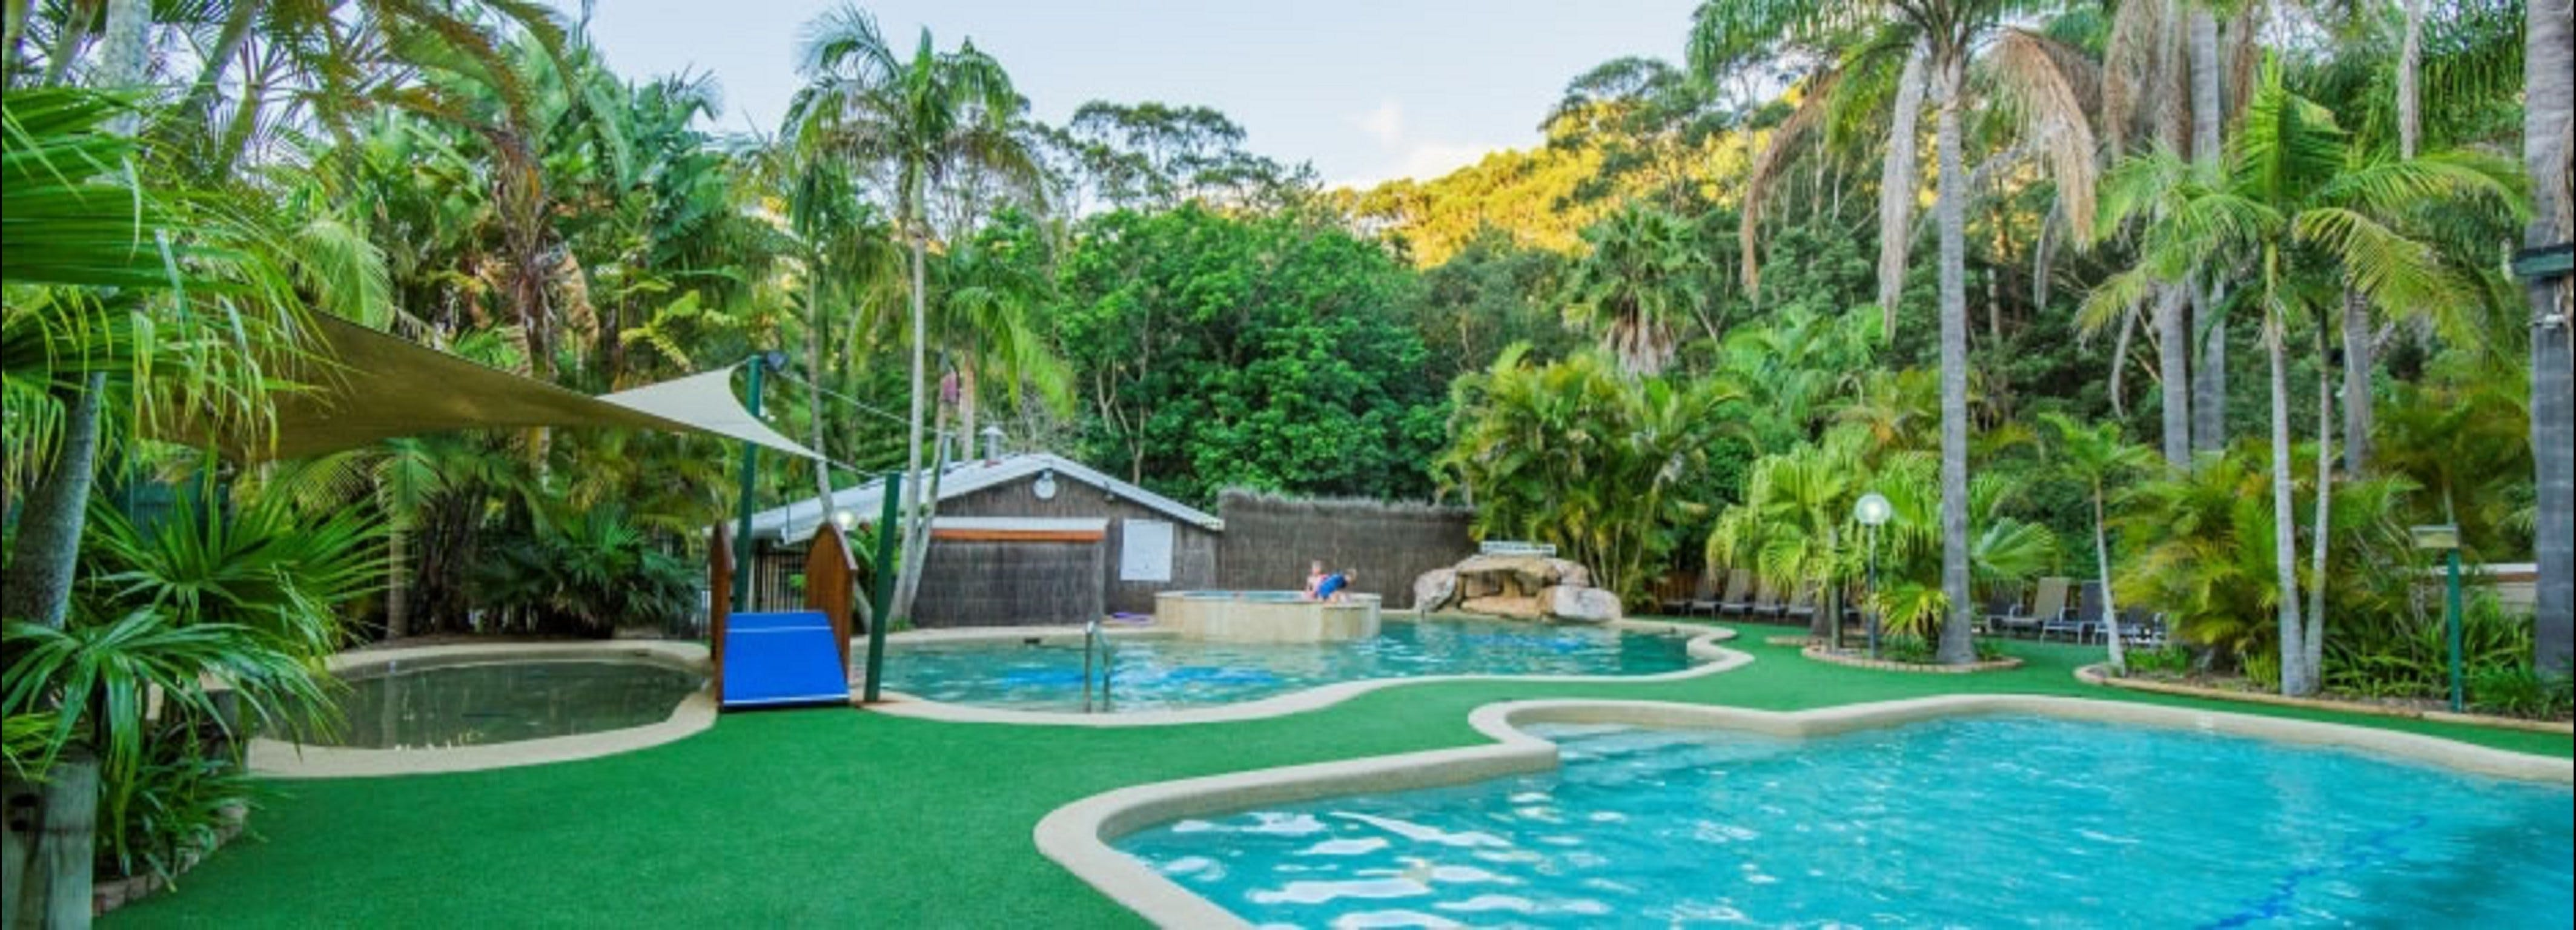 The Palms at Avoca - Tourism Cairns